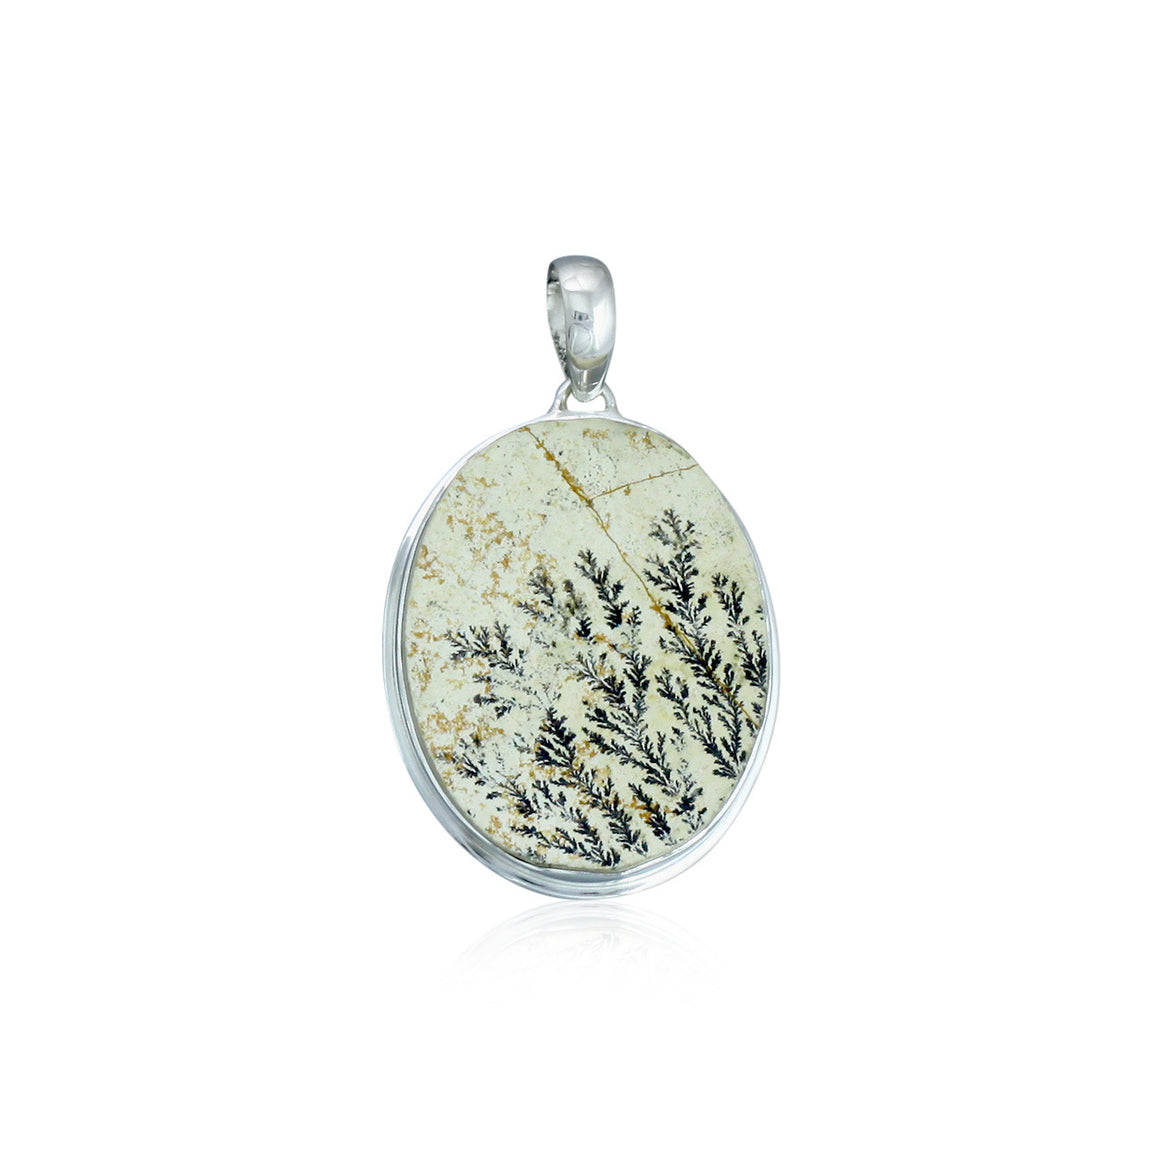 Landscape Dendrite Pendant - One of a Kind